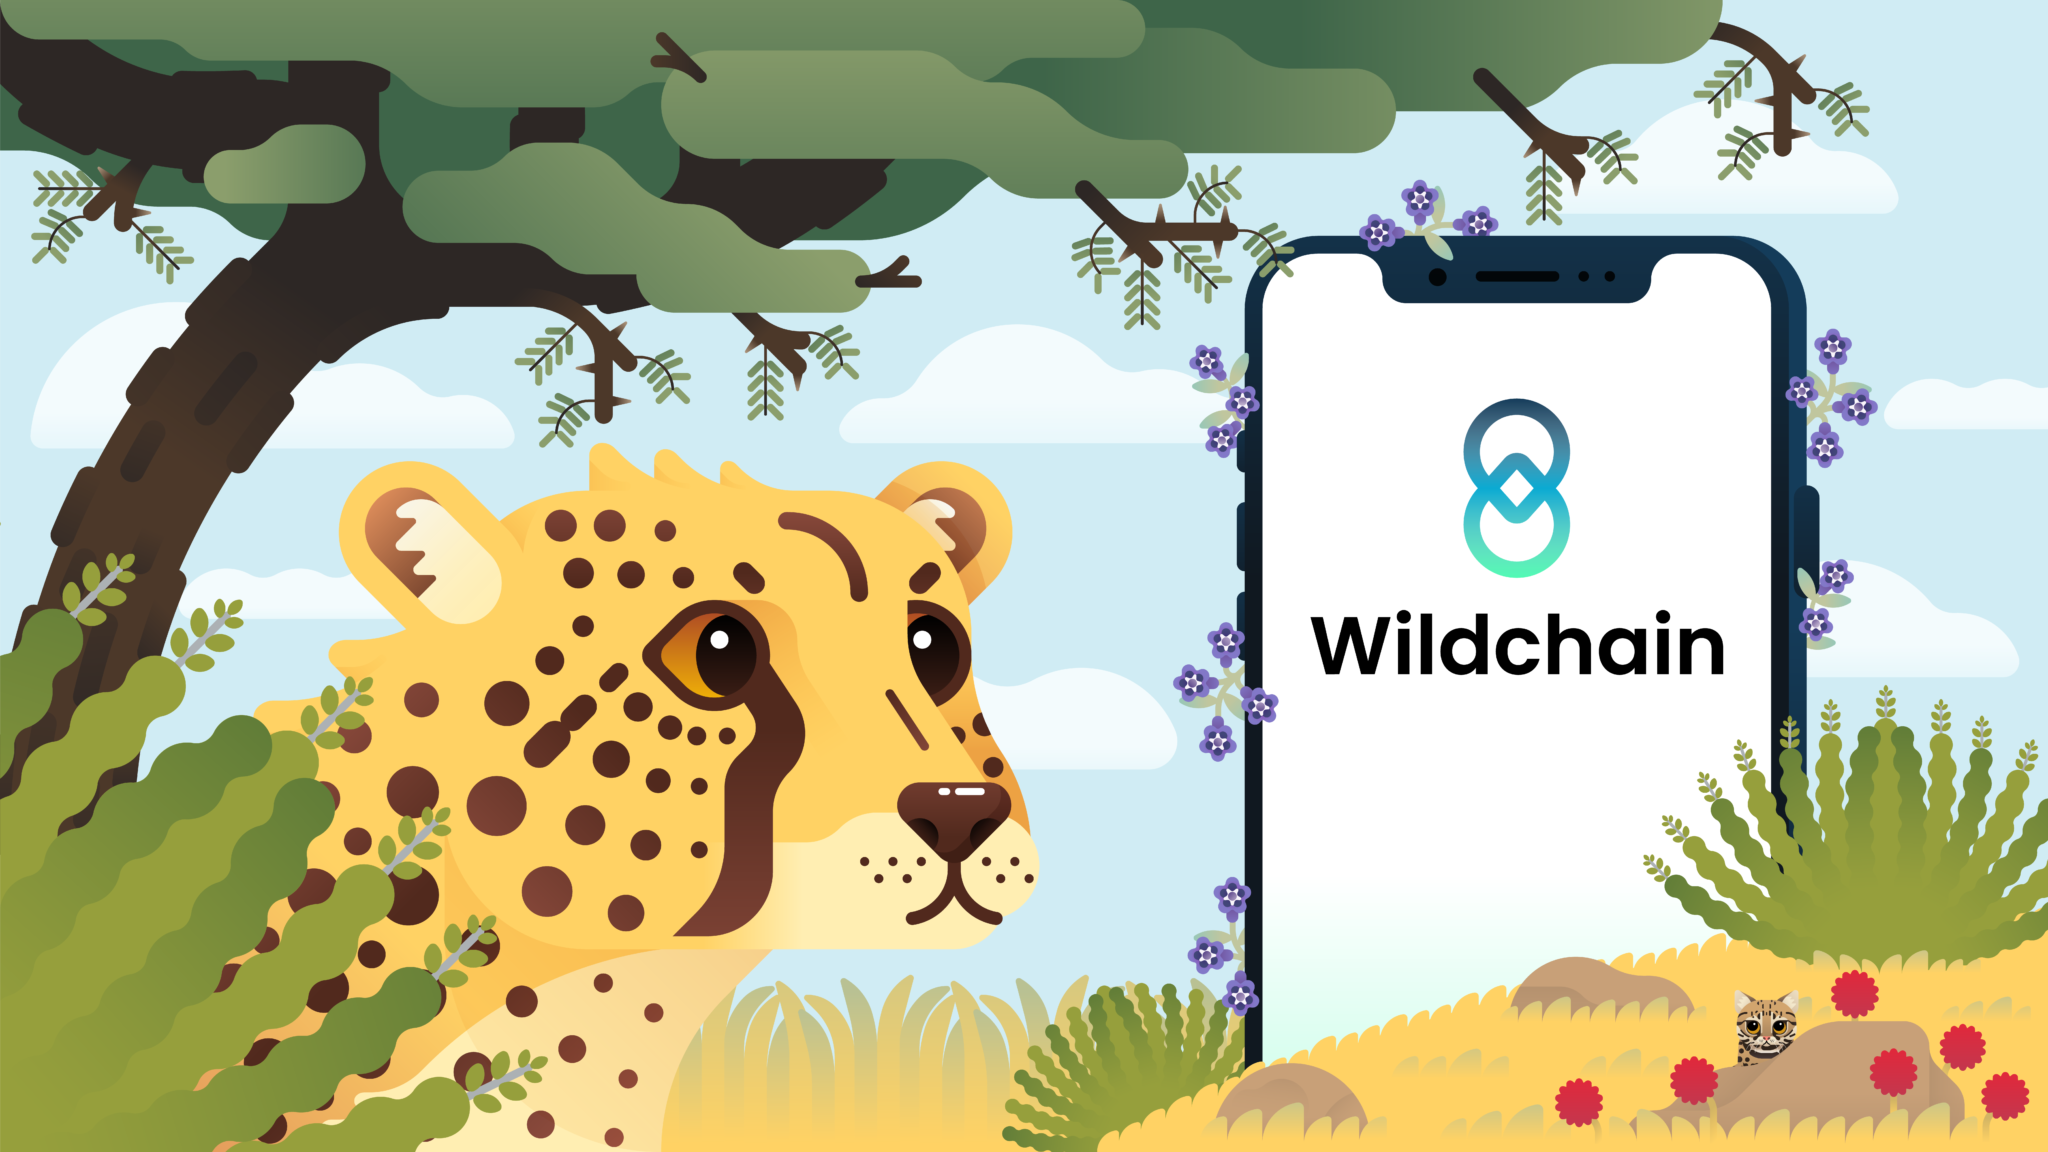 Wildchain game_Mar Gone Wild